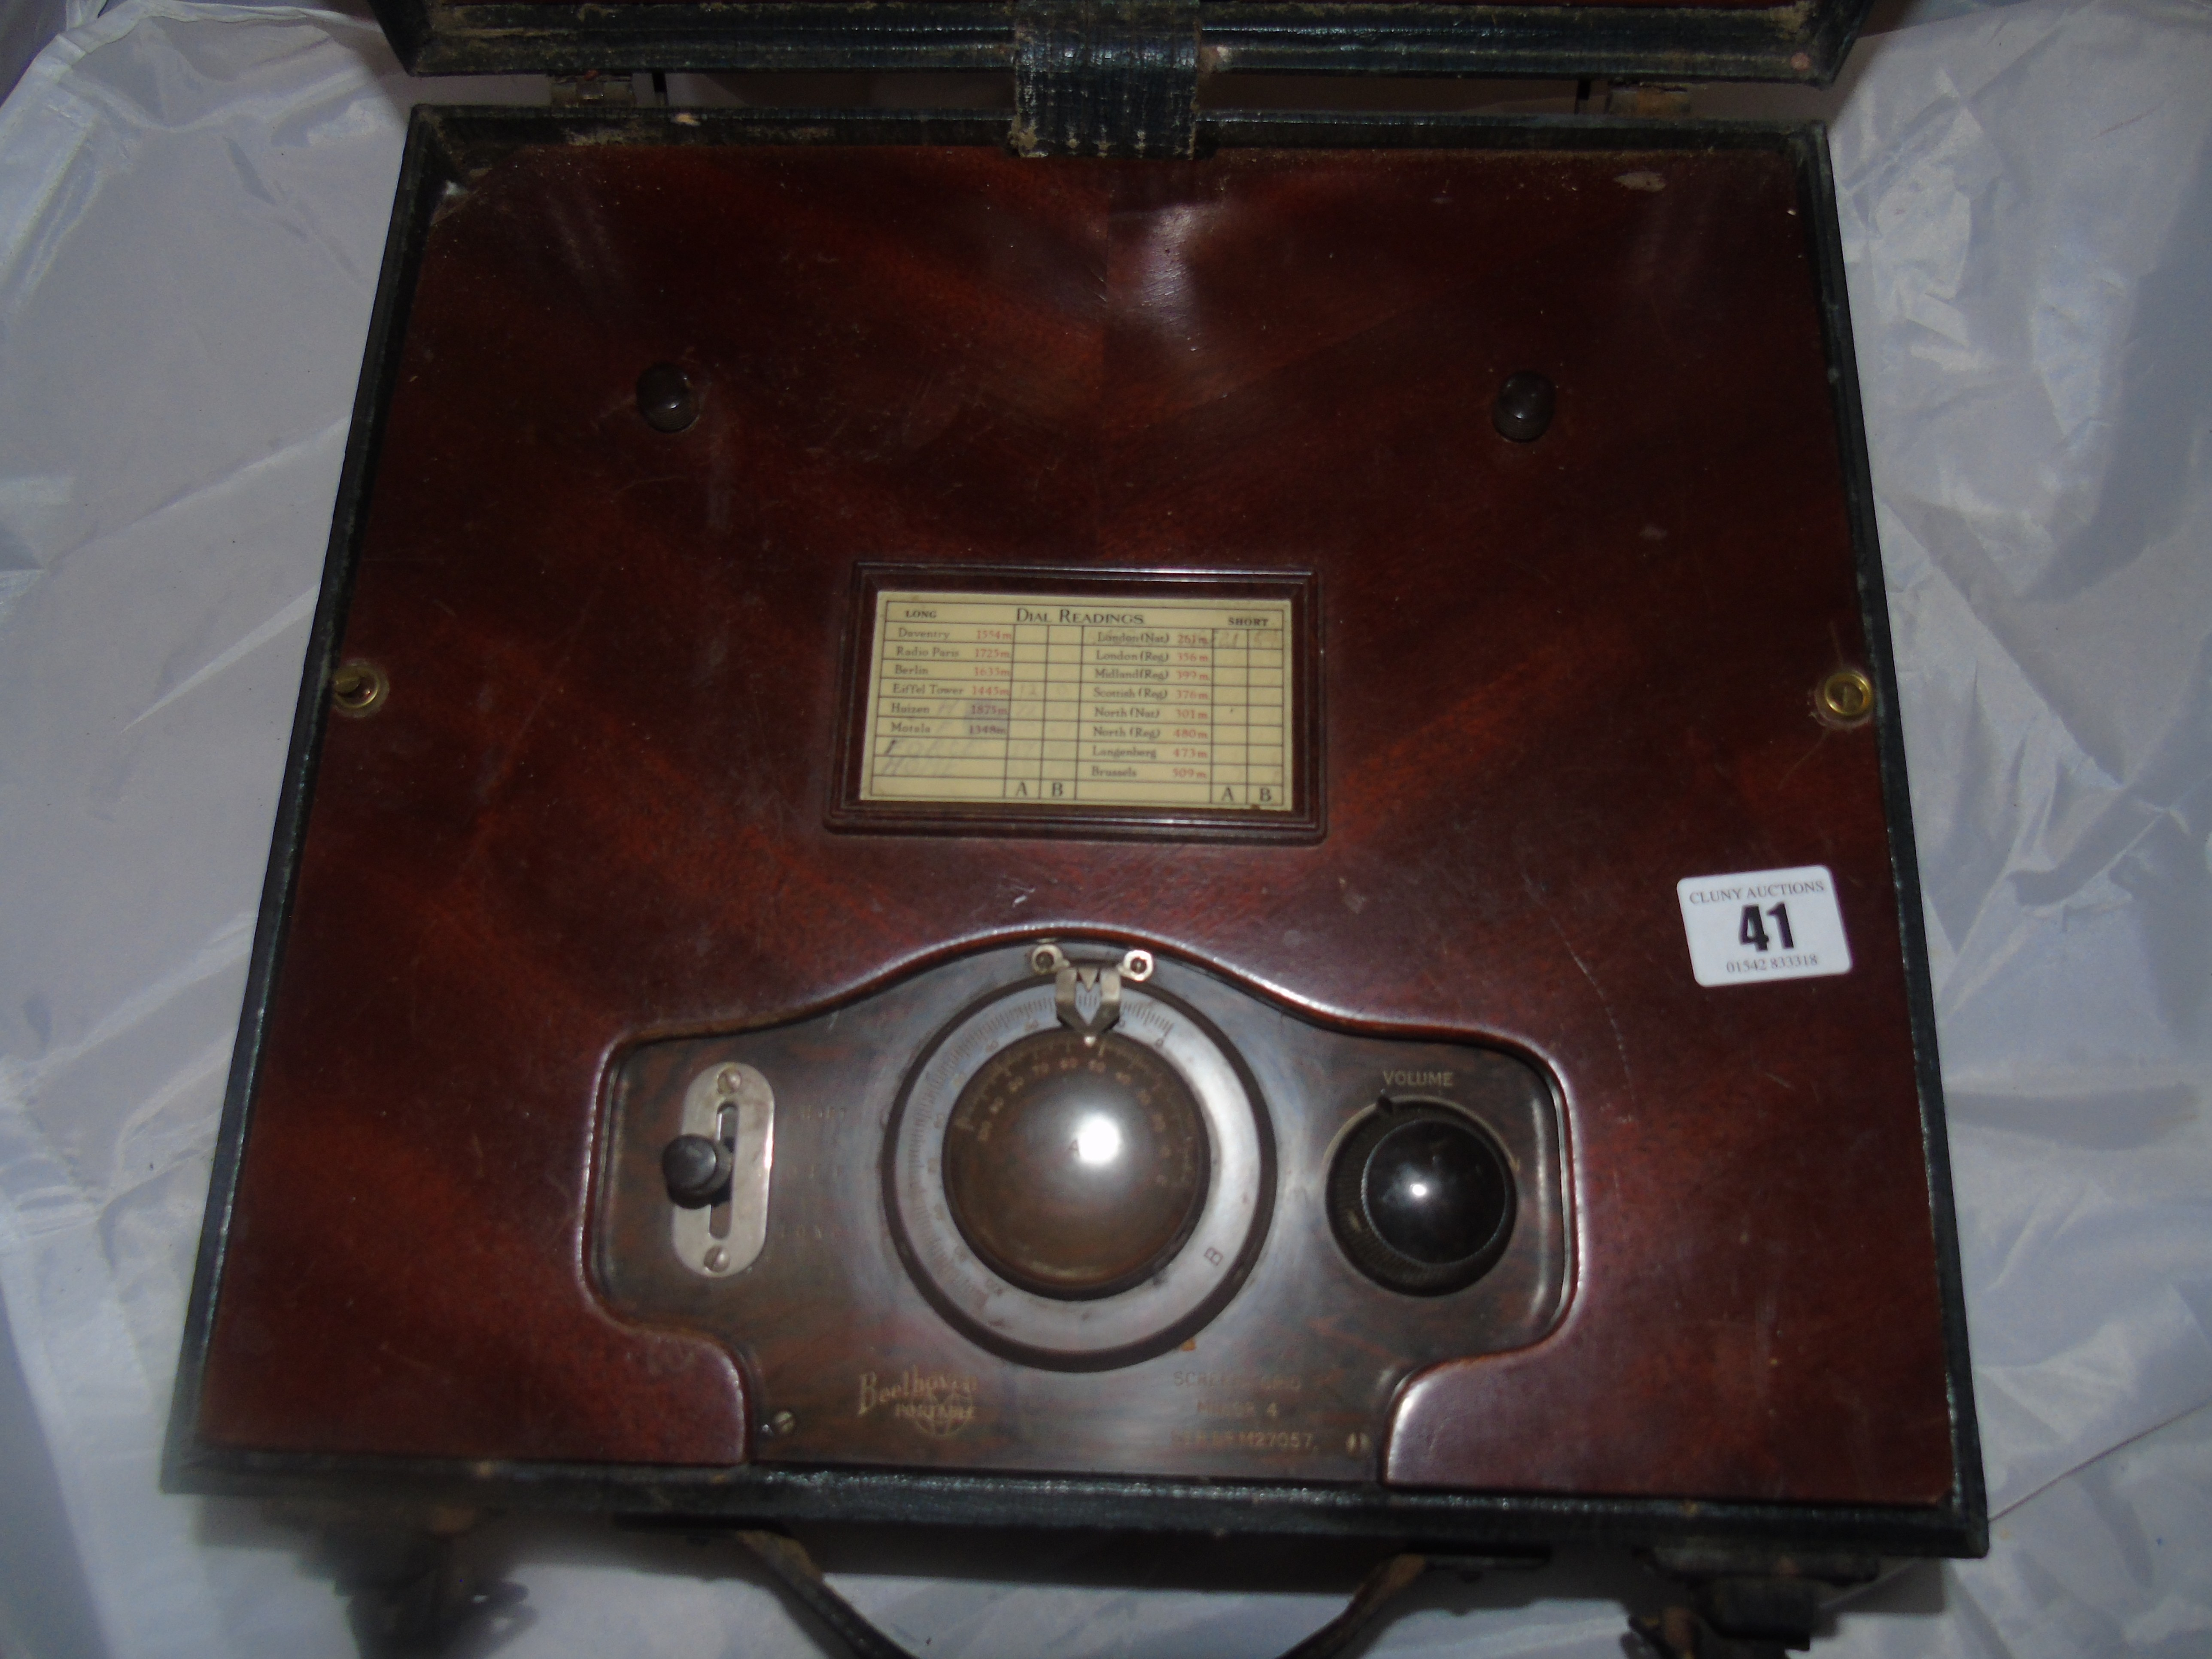 Lot 41 - BEETHOVEN PORTABLE VALVE RADIO EST [£60-£80]